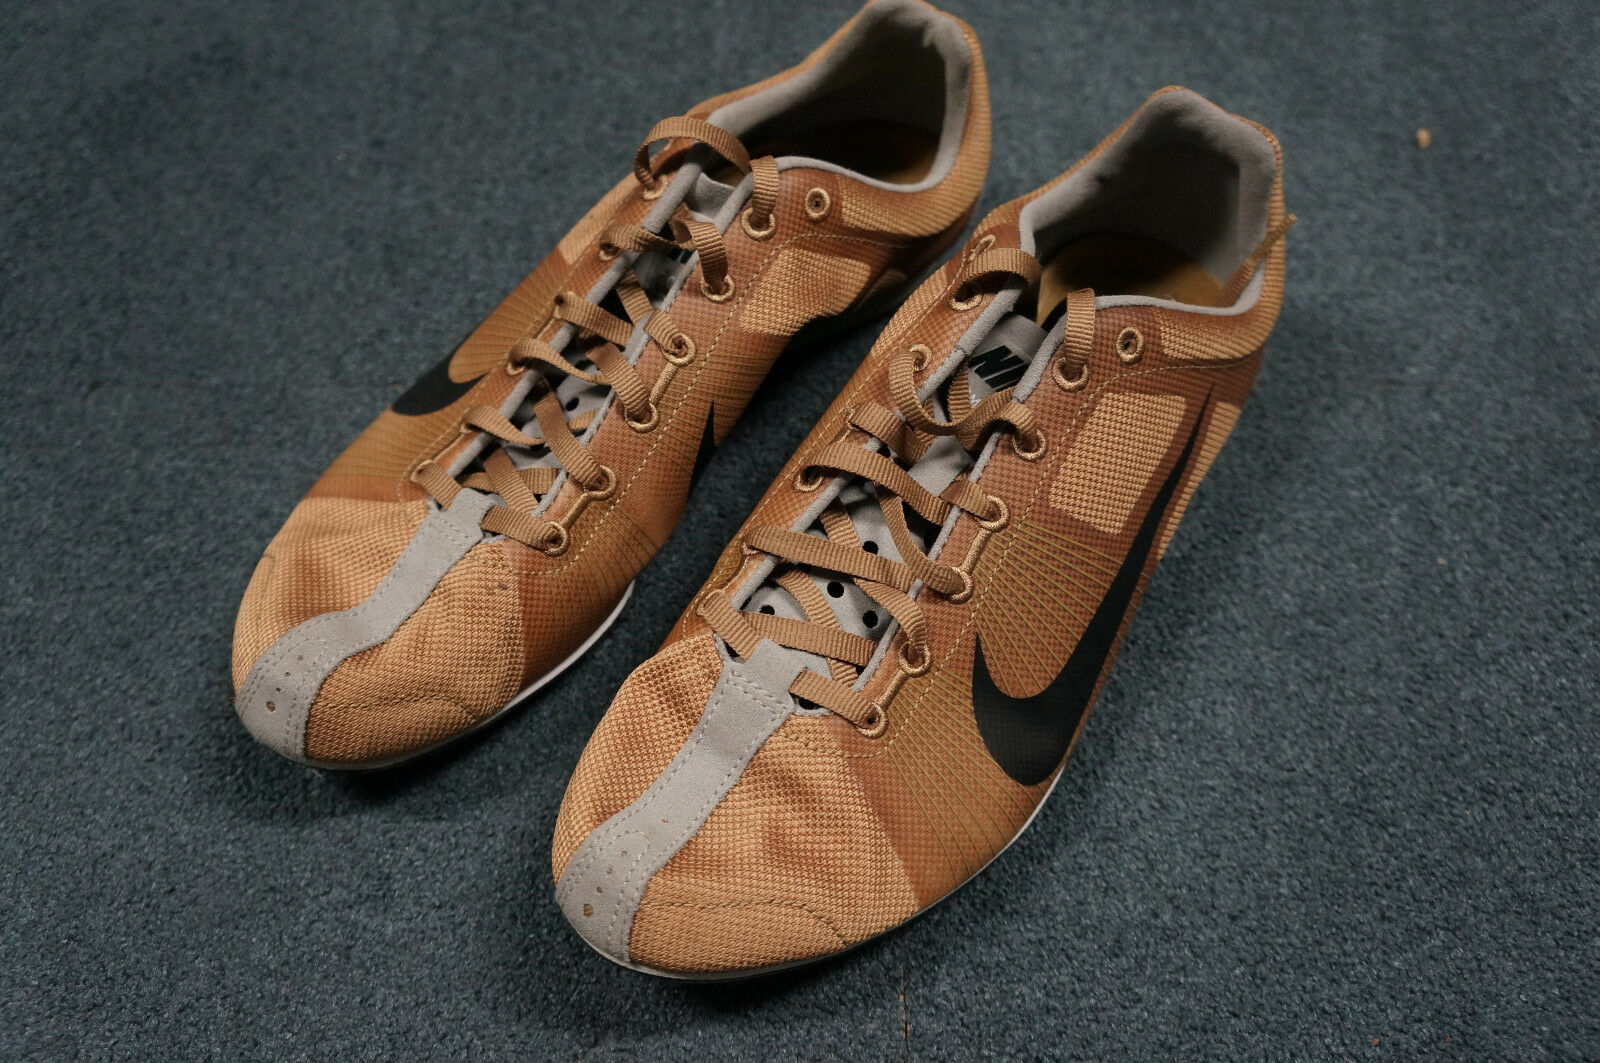 Nike Bowerman Mens US 7.5 Brown Spike Track Shoes Zoom D B3072 Comfortable and good-looking